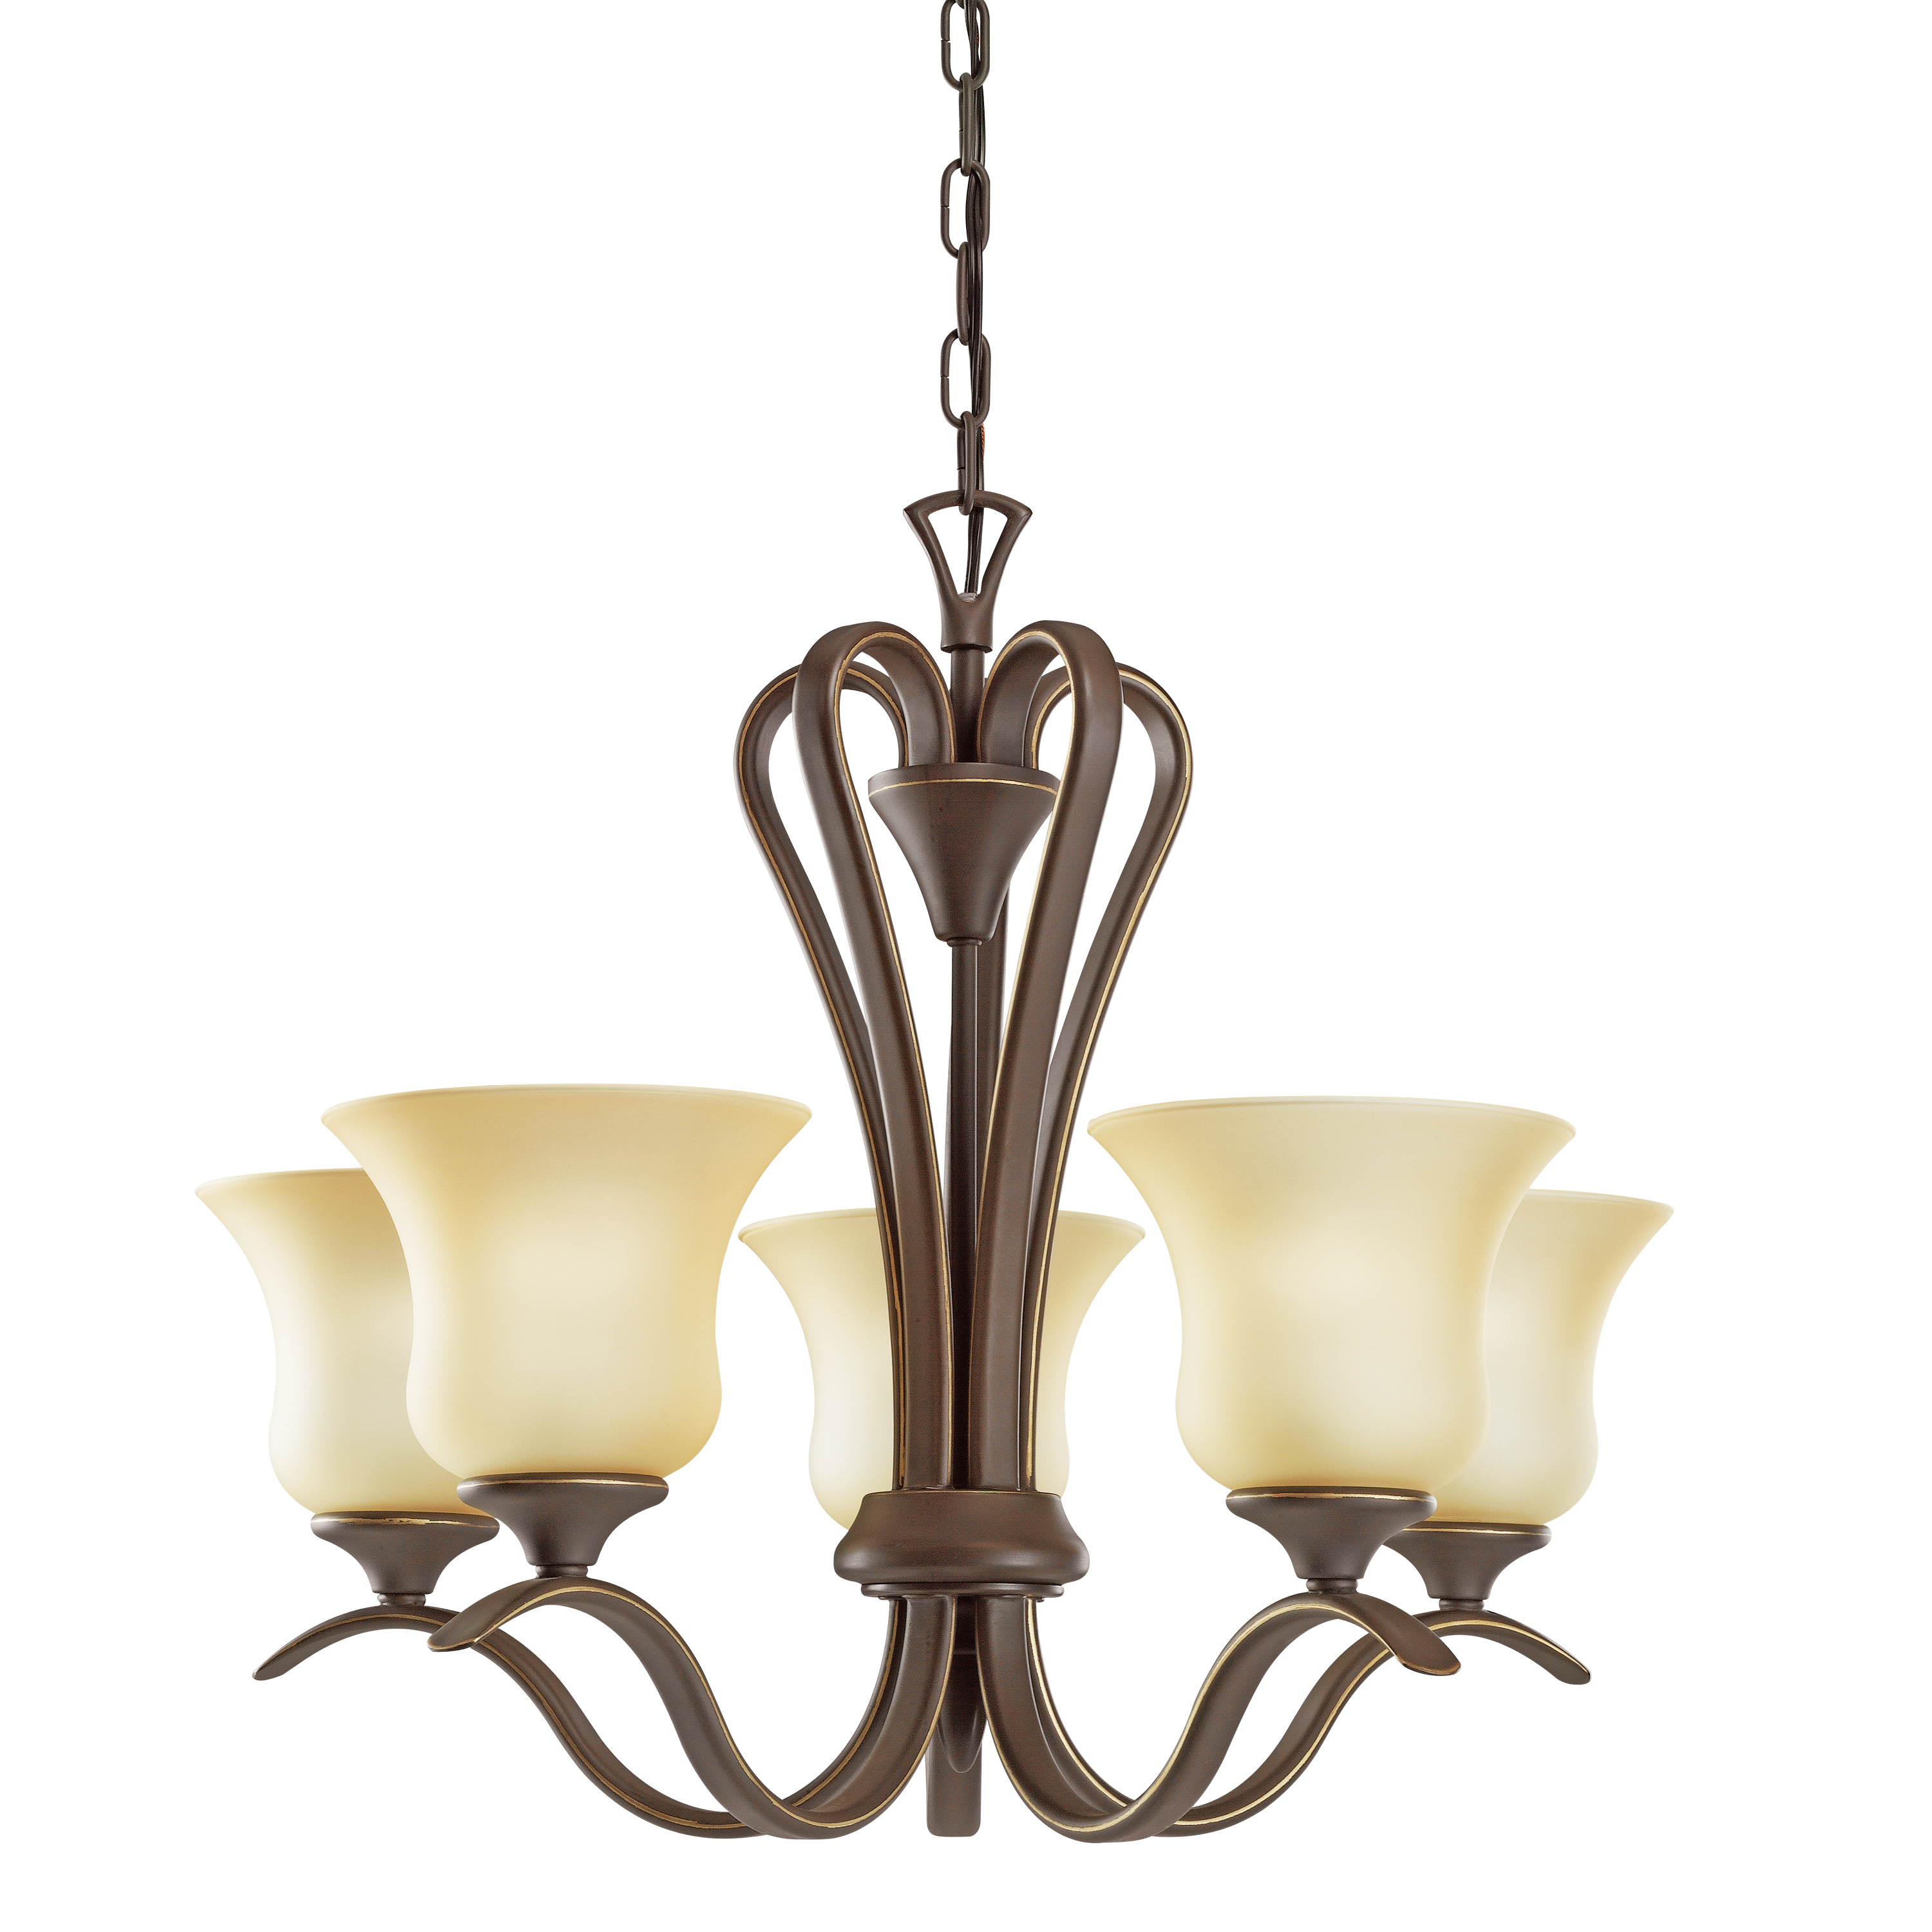 Kichler Wedgeport LED Chandelier with Umber Etched Shade - Olde Bronze (2085OZL16)